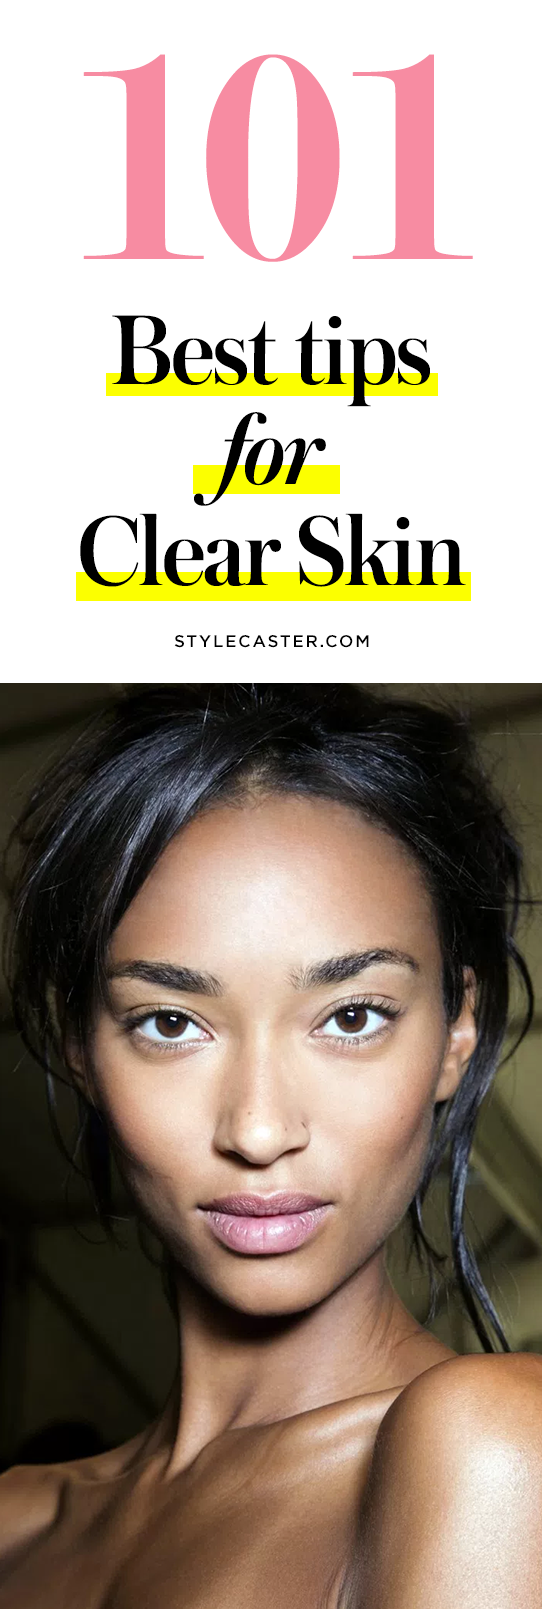 101 best tips for clear skin | Natural + DIY acne treatment | How to get rid of blemishes and scars to reveal perfect, glowing skin | @stylecaster